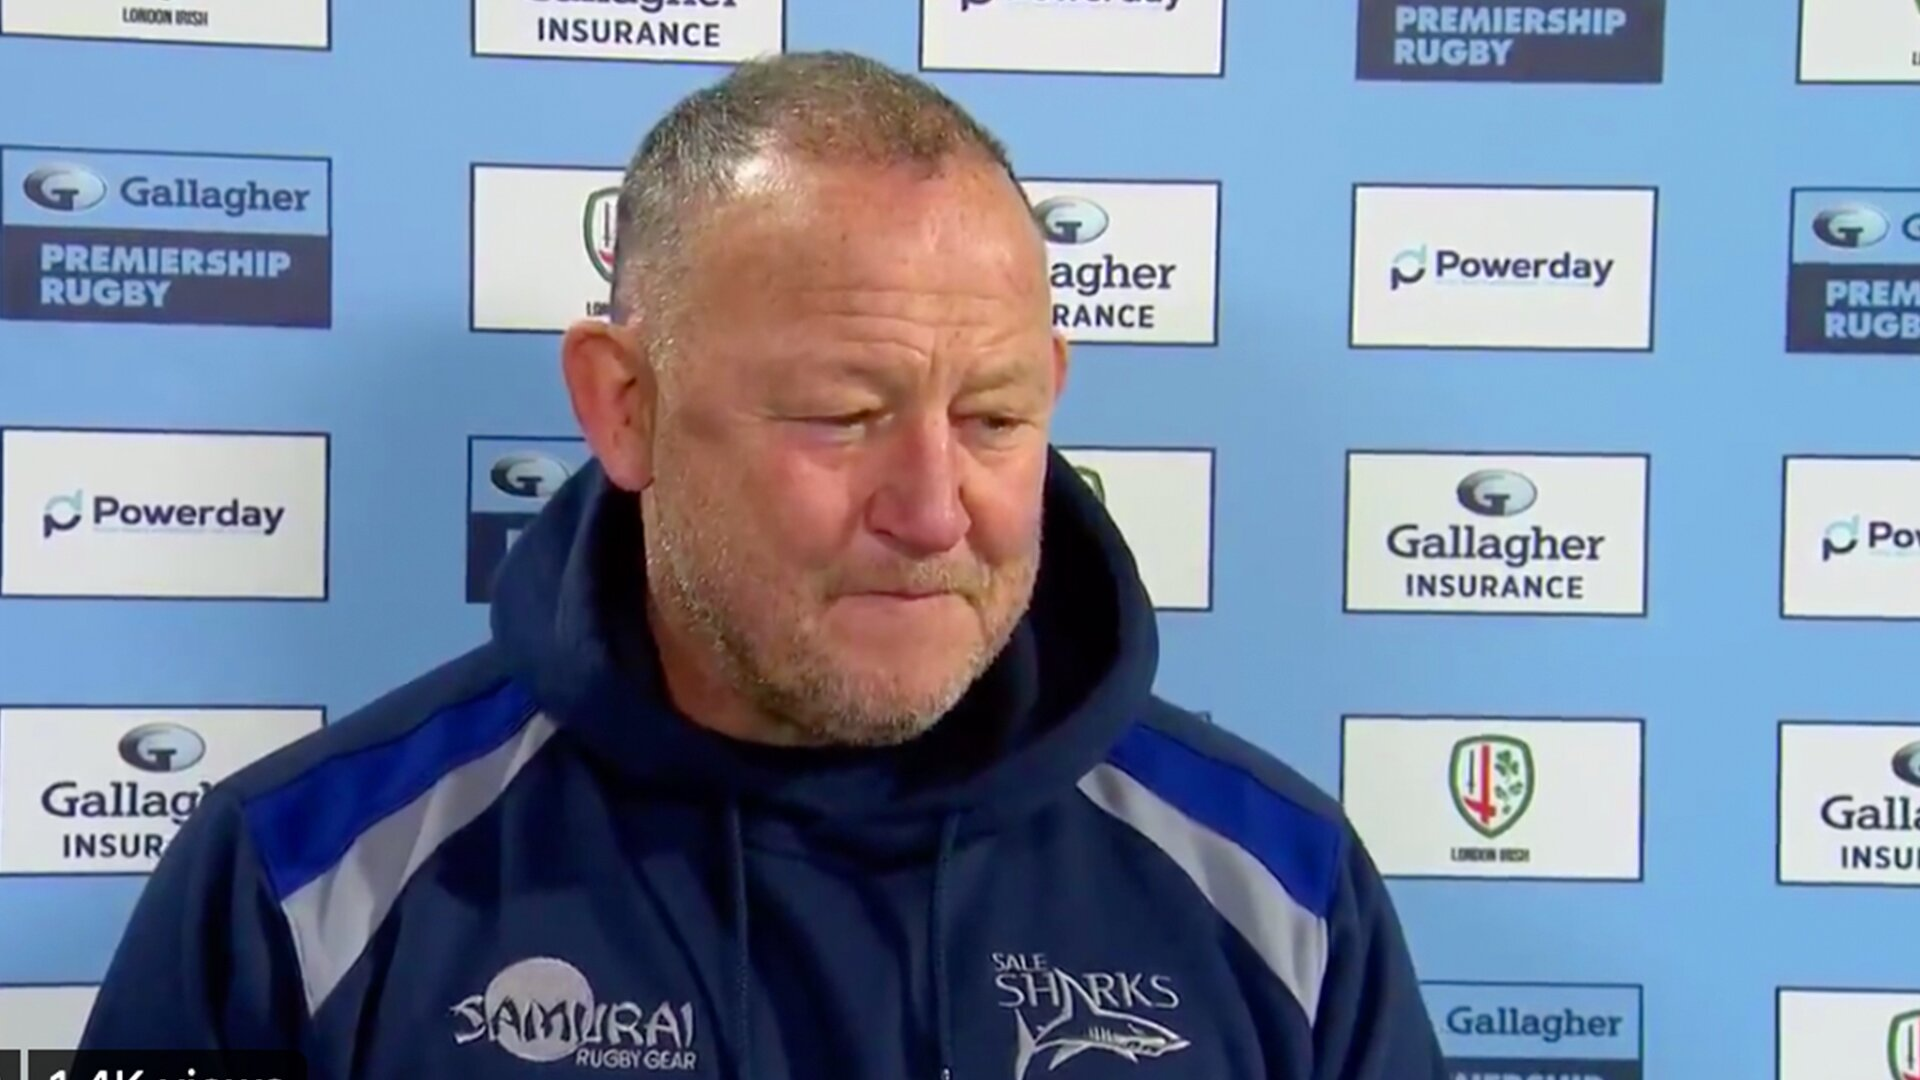 Footage of Steve Diamond and his final interview for Sale Sharks is confusing many rugby fans